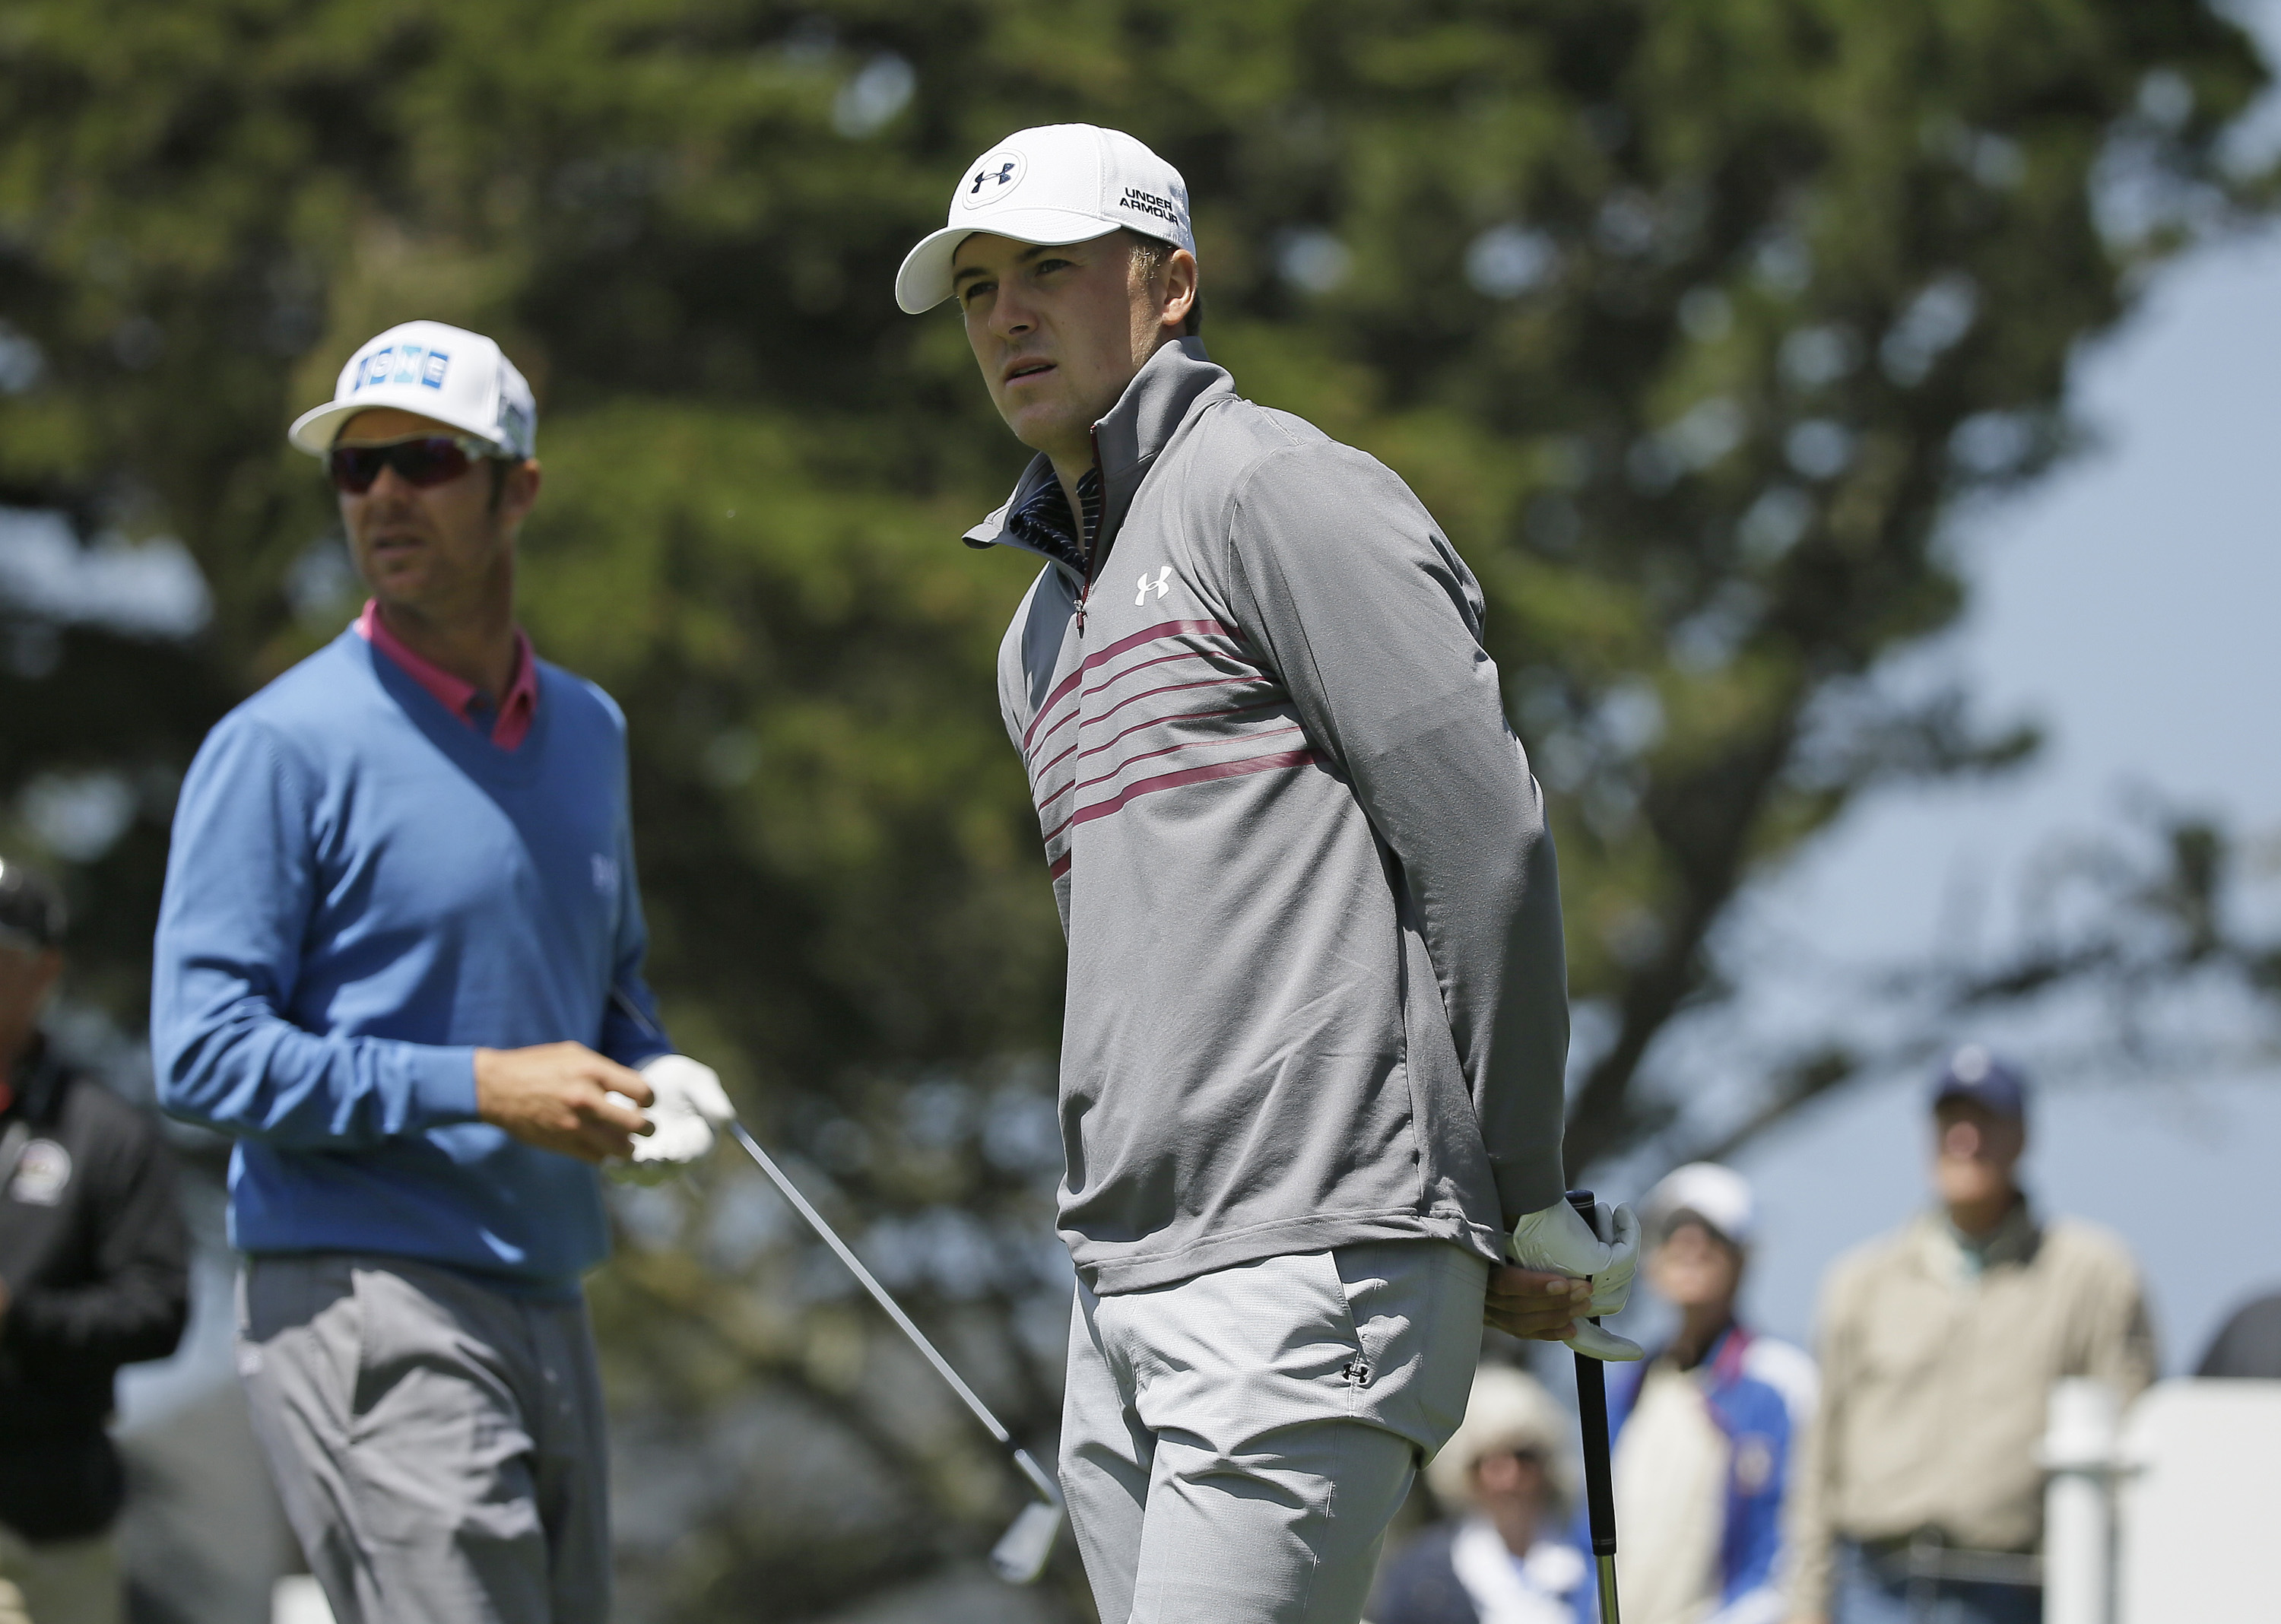 Jordan Spieth, right, follows his shot from the second tee of TPC Harding Park during round-robin play against Mikko Ilonen, left, of Finland at the Match Play Championship golf tournament Wednesday, April 29, 2015, in San Francisco. (AP Photo/Eric Risber